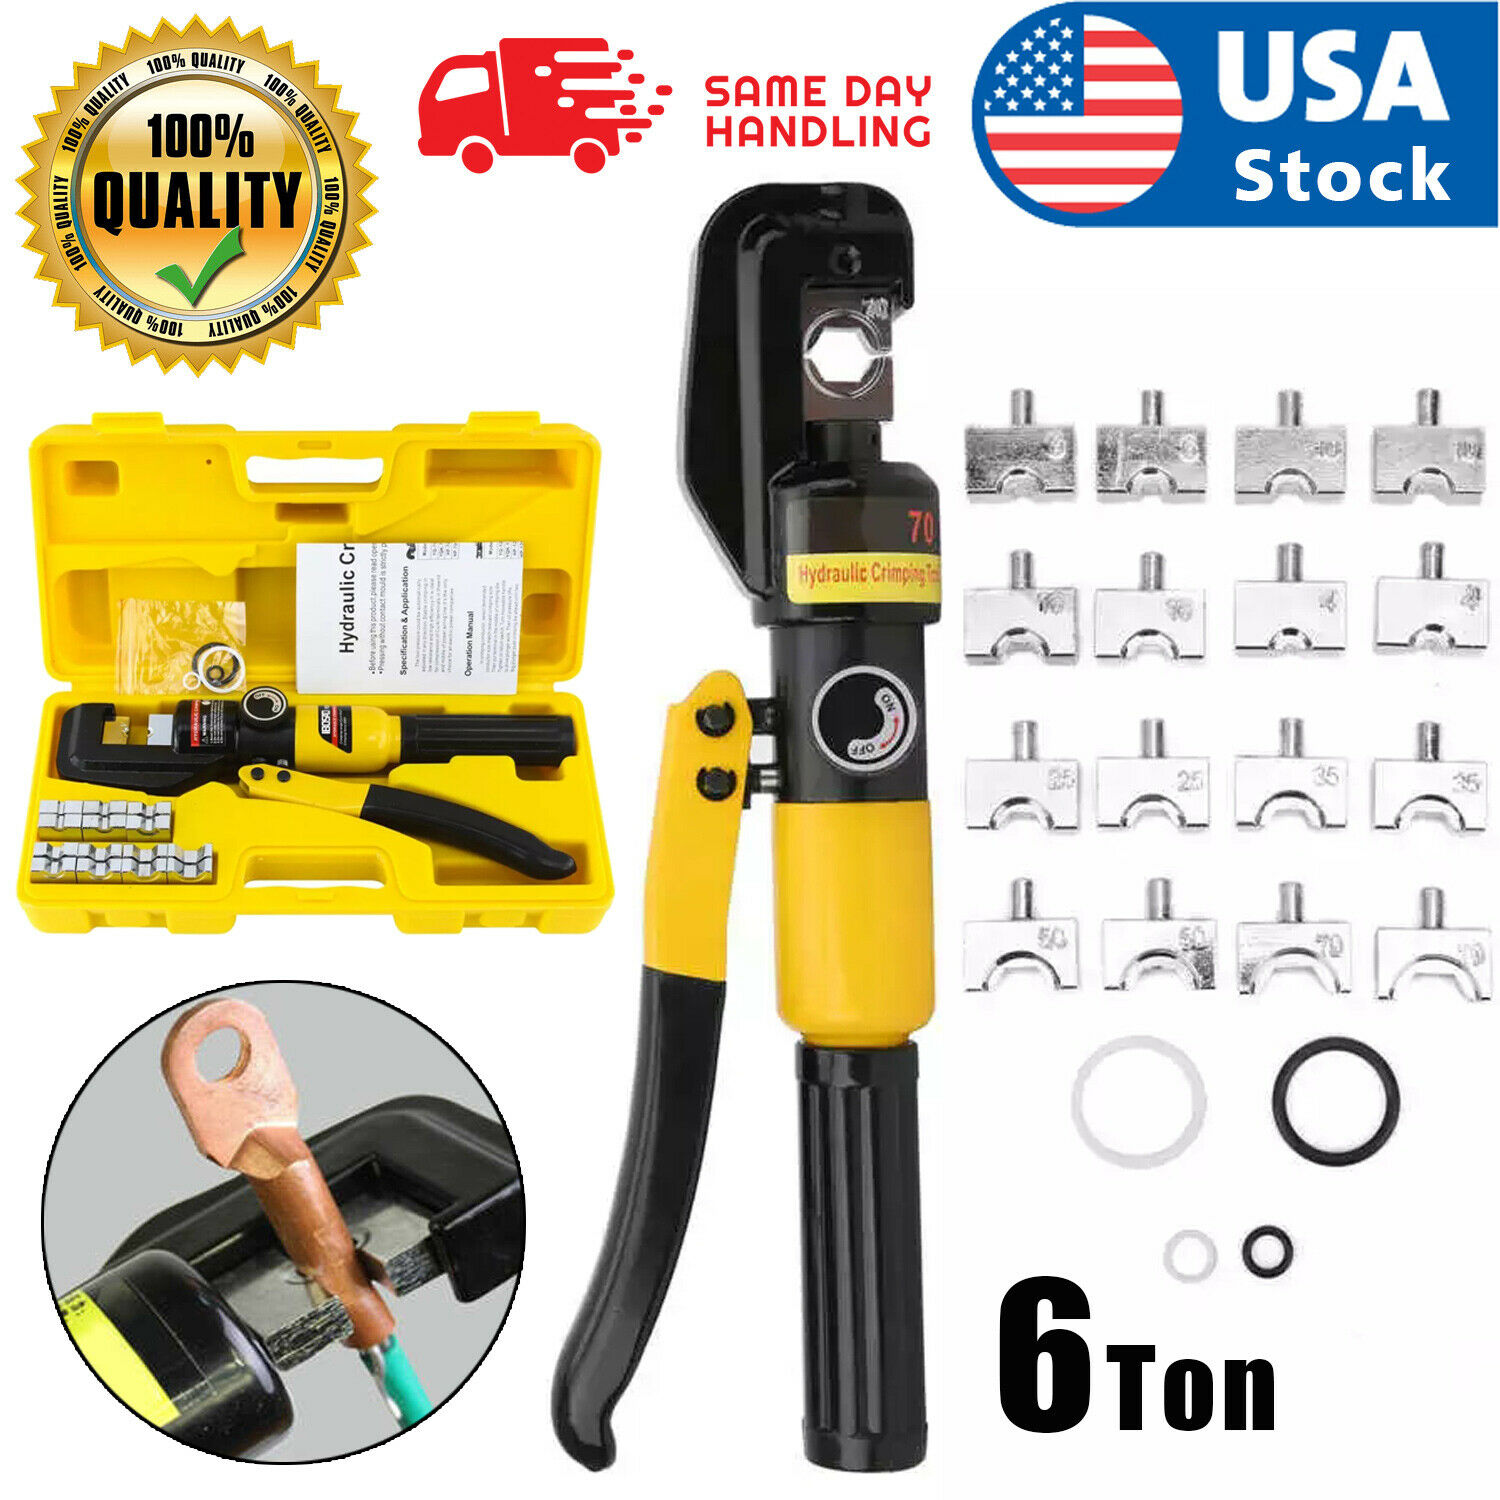 6 Ton Hydraulic Wire Battery Cable Lug Terminal Crimper Crimping Tool 8 Dies US Business & Industrial